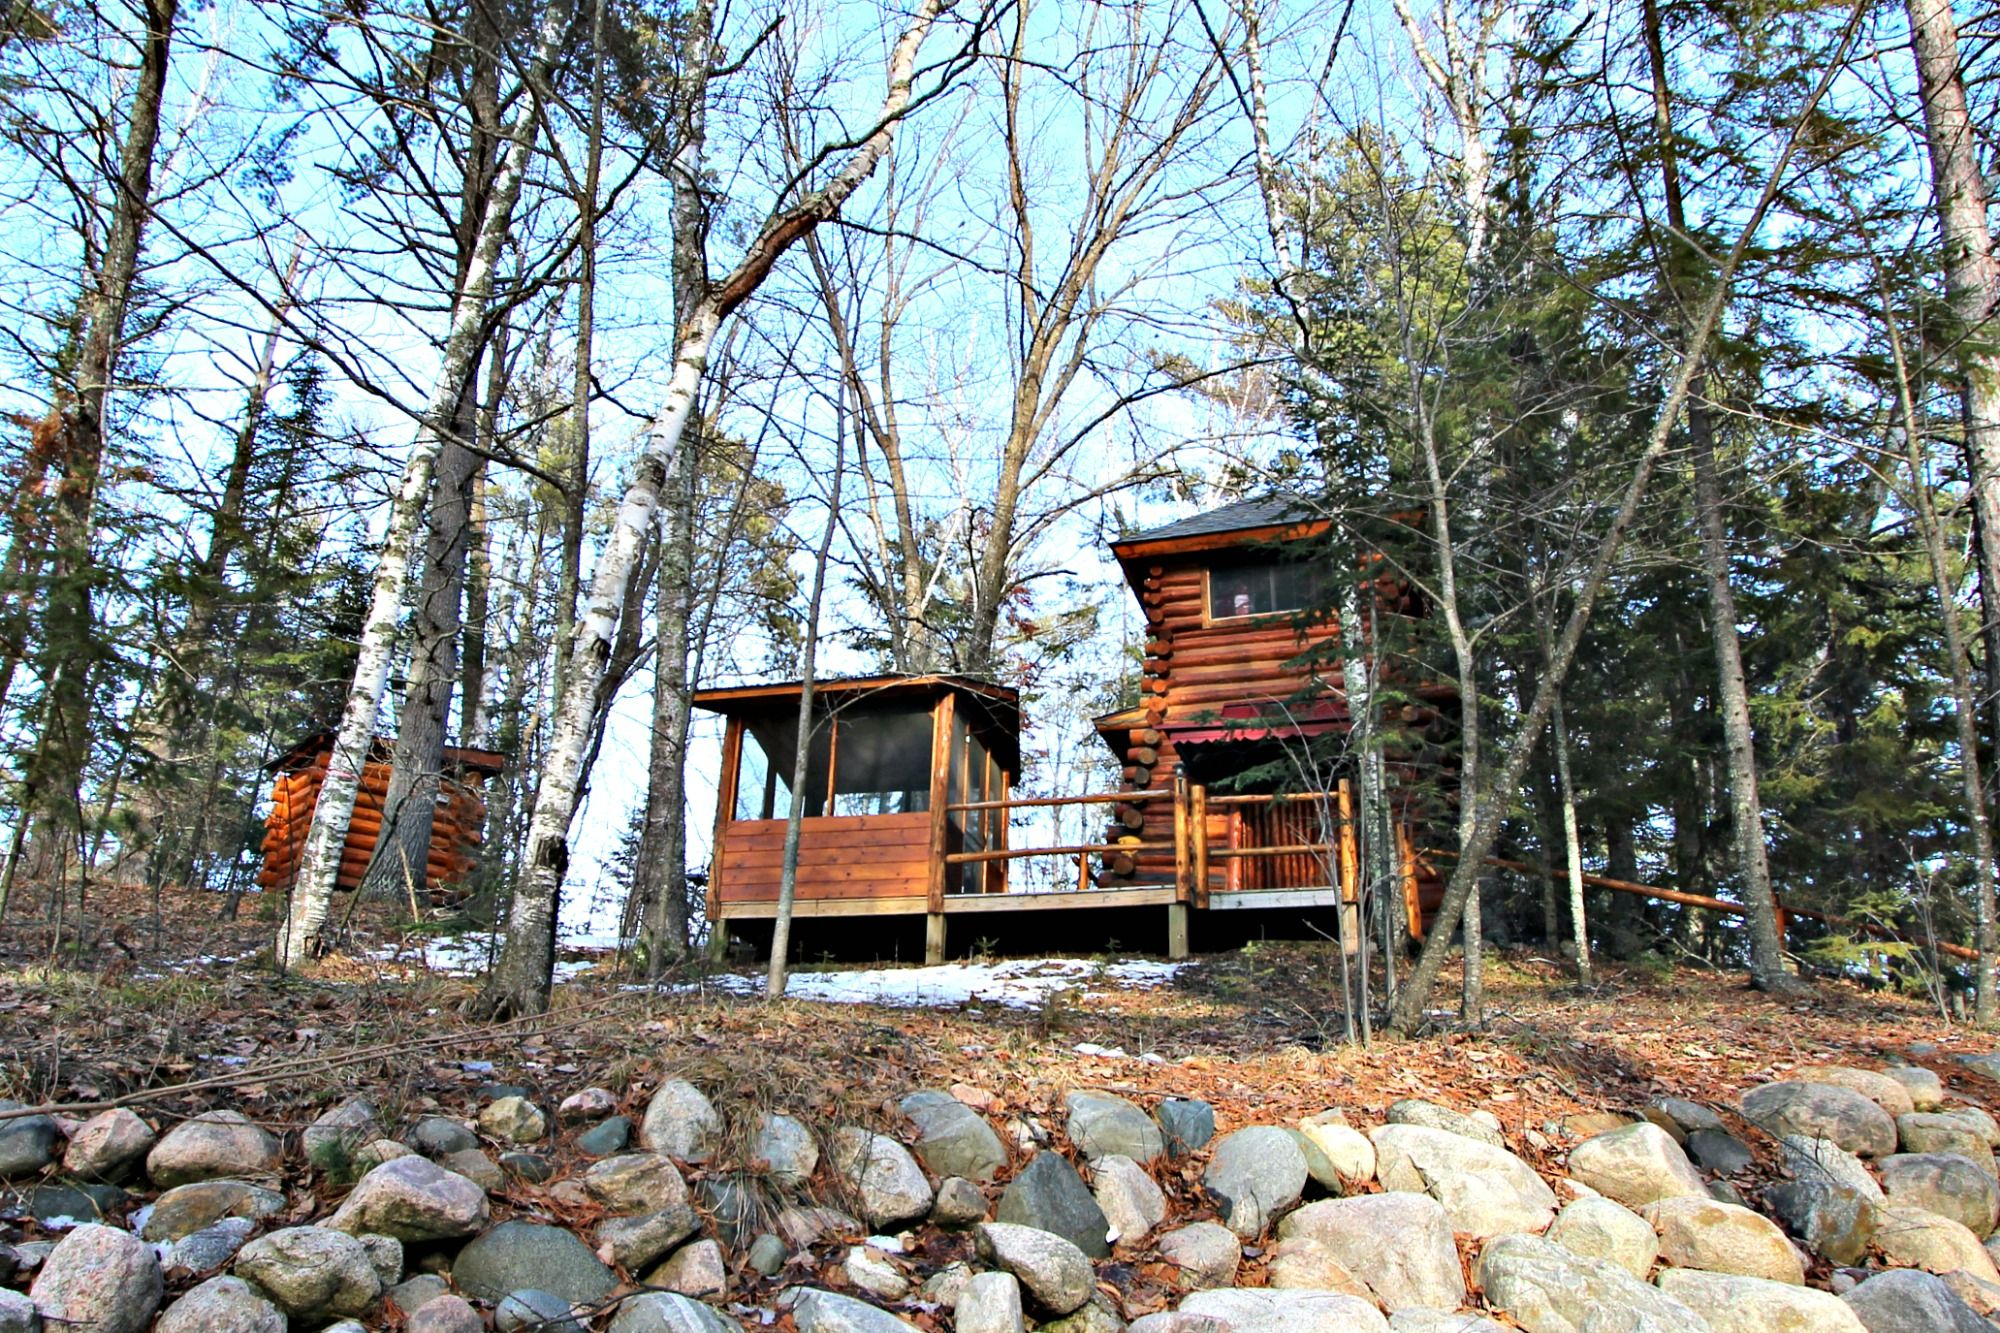 mn beam homes home pictures handcrafted and improvment in post cabins cavareno sale galleries for log